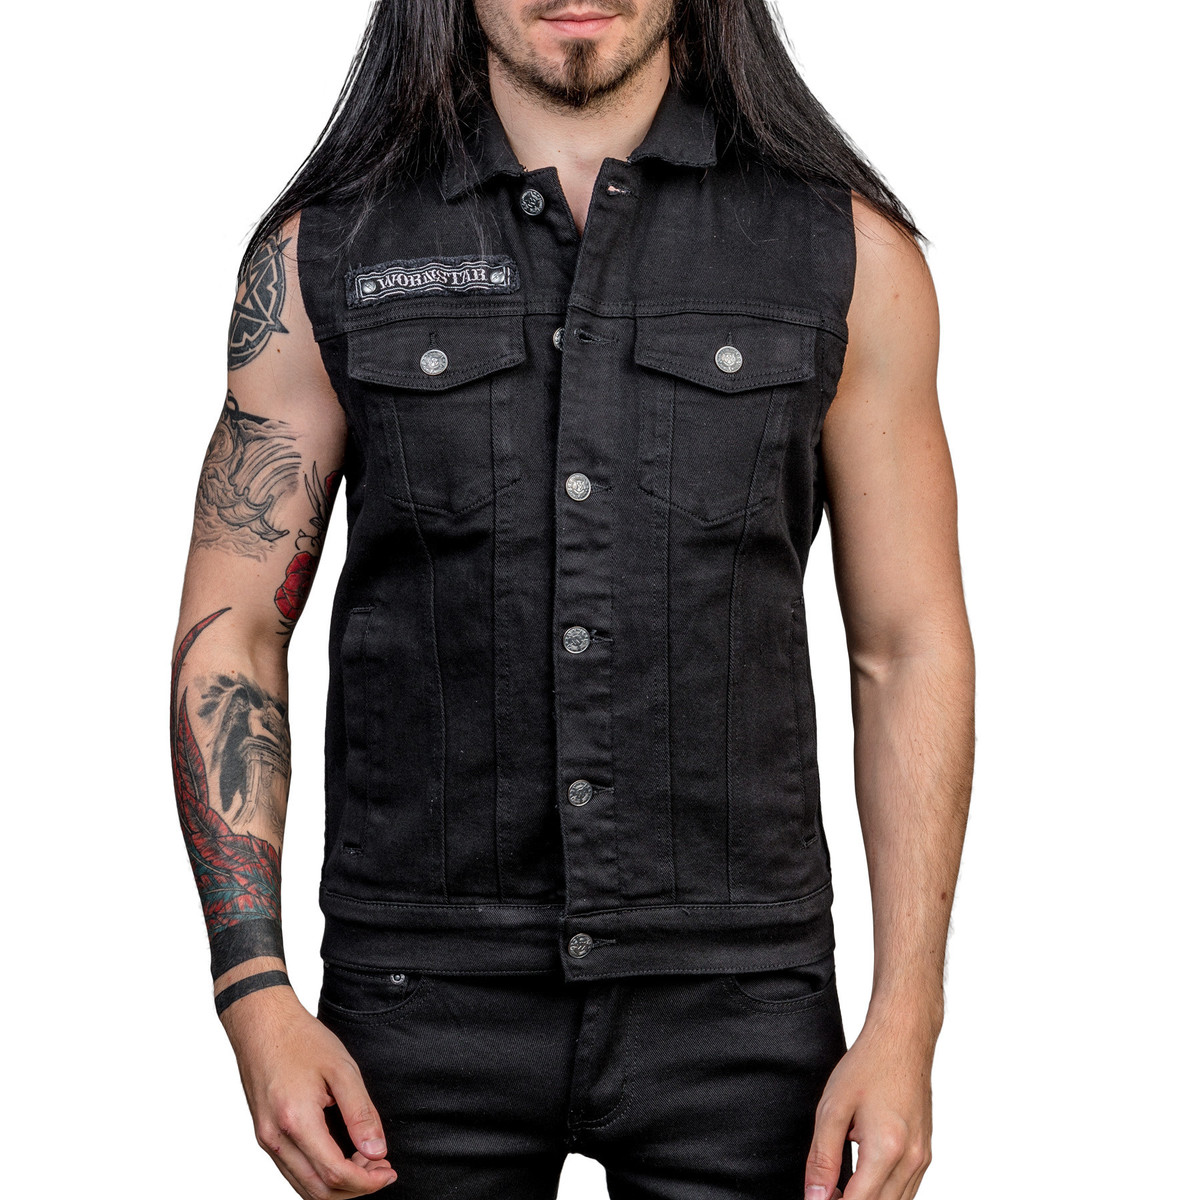 vesta - Essentials - WORNSTAR - WSJ-02-IMVK